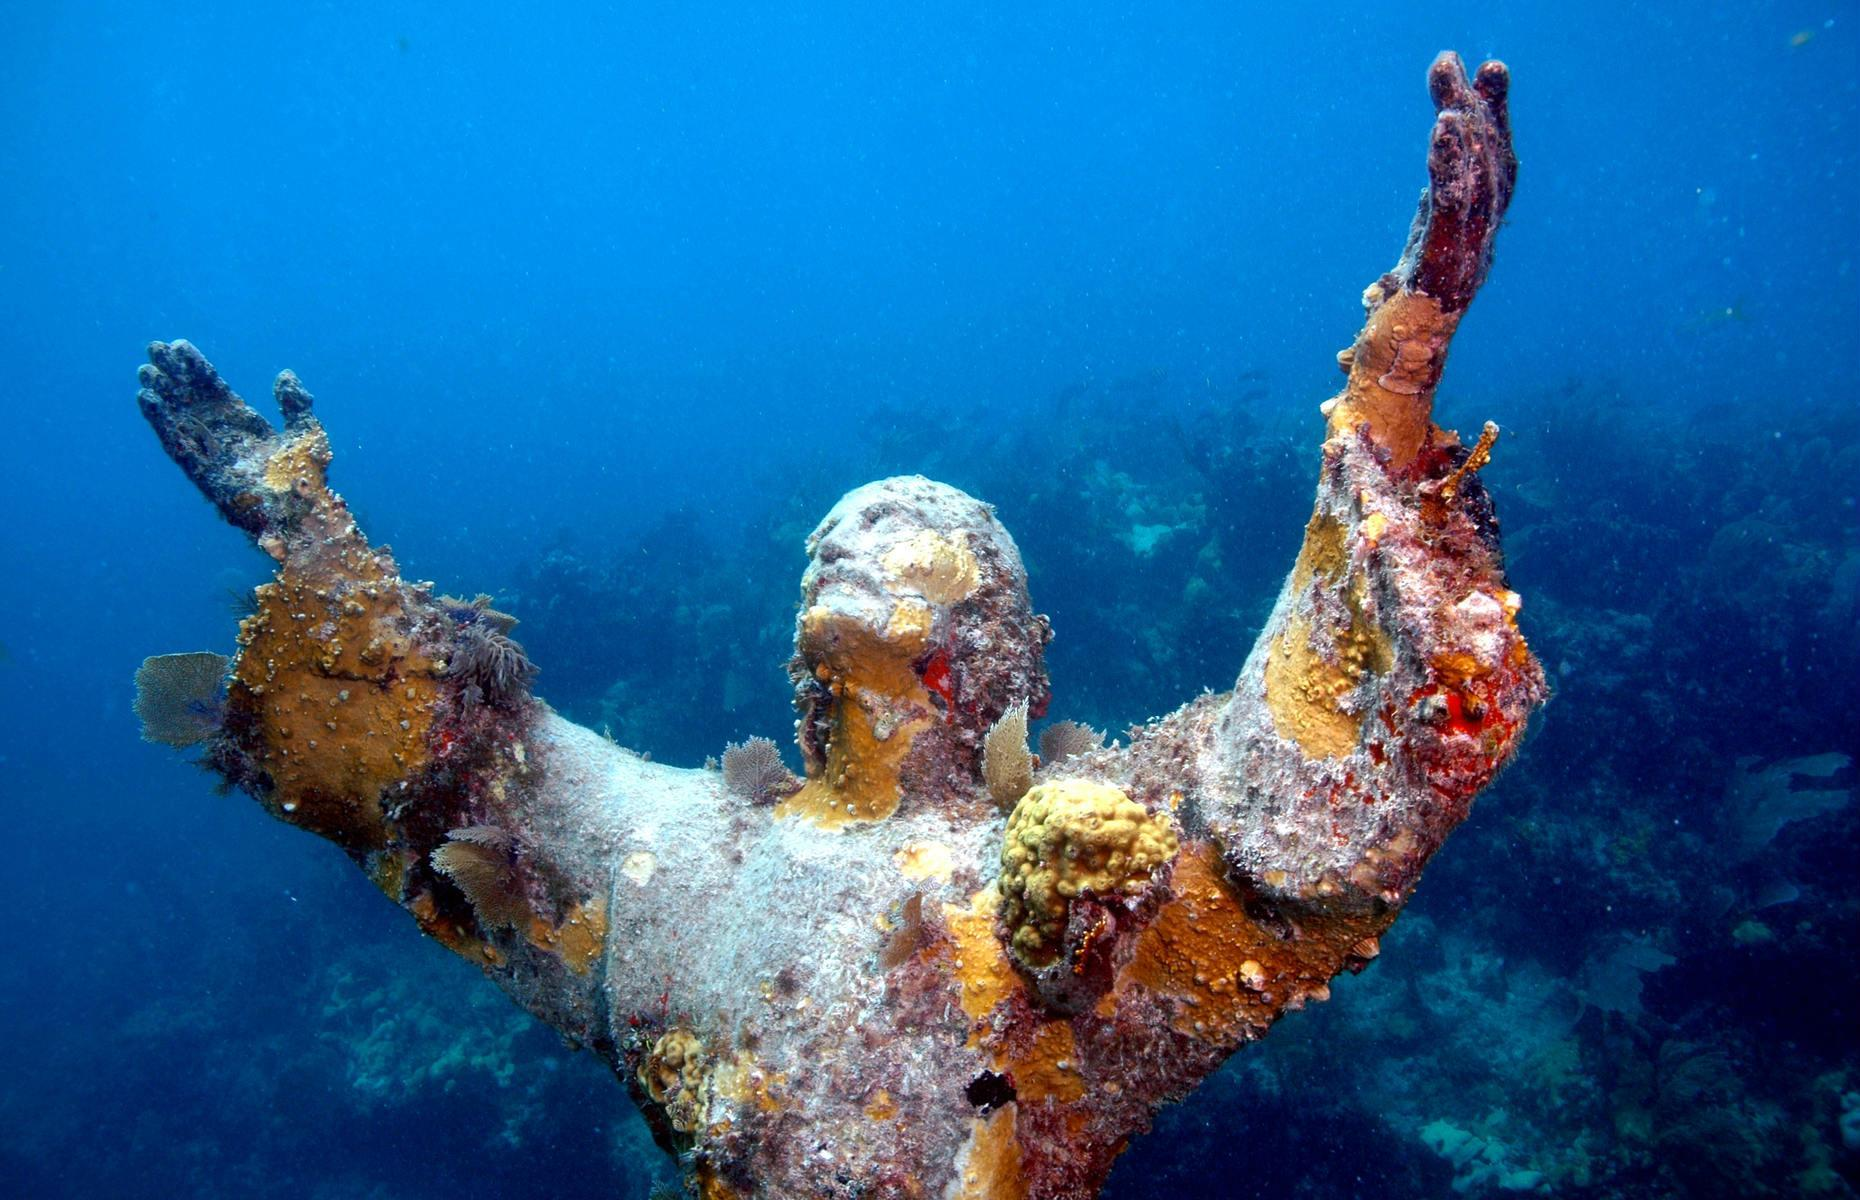 Slide 3 of 31: Set just off Italy's western coast, near San Fruttuoso, this was the original underwater Jesus statue, a figure whose copies can now also be glimpsed in locations around the world. Now coral-encrusted, the statue – arms outstretched, face raised to the heavens – is eight feet tall (2.4m) and set 56 feet (17m) below the water. The sculpture was created by Guido Galletti and commissioned by Italian diver Duilio Marcante in 1954 to honor his friend and fellow diver Dario Gonzatti who died diving a few years prior.